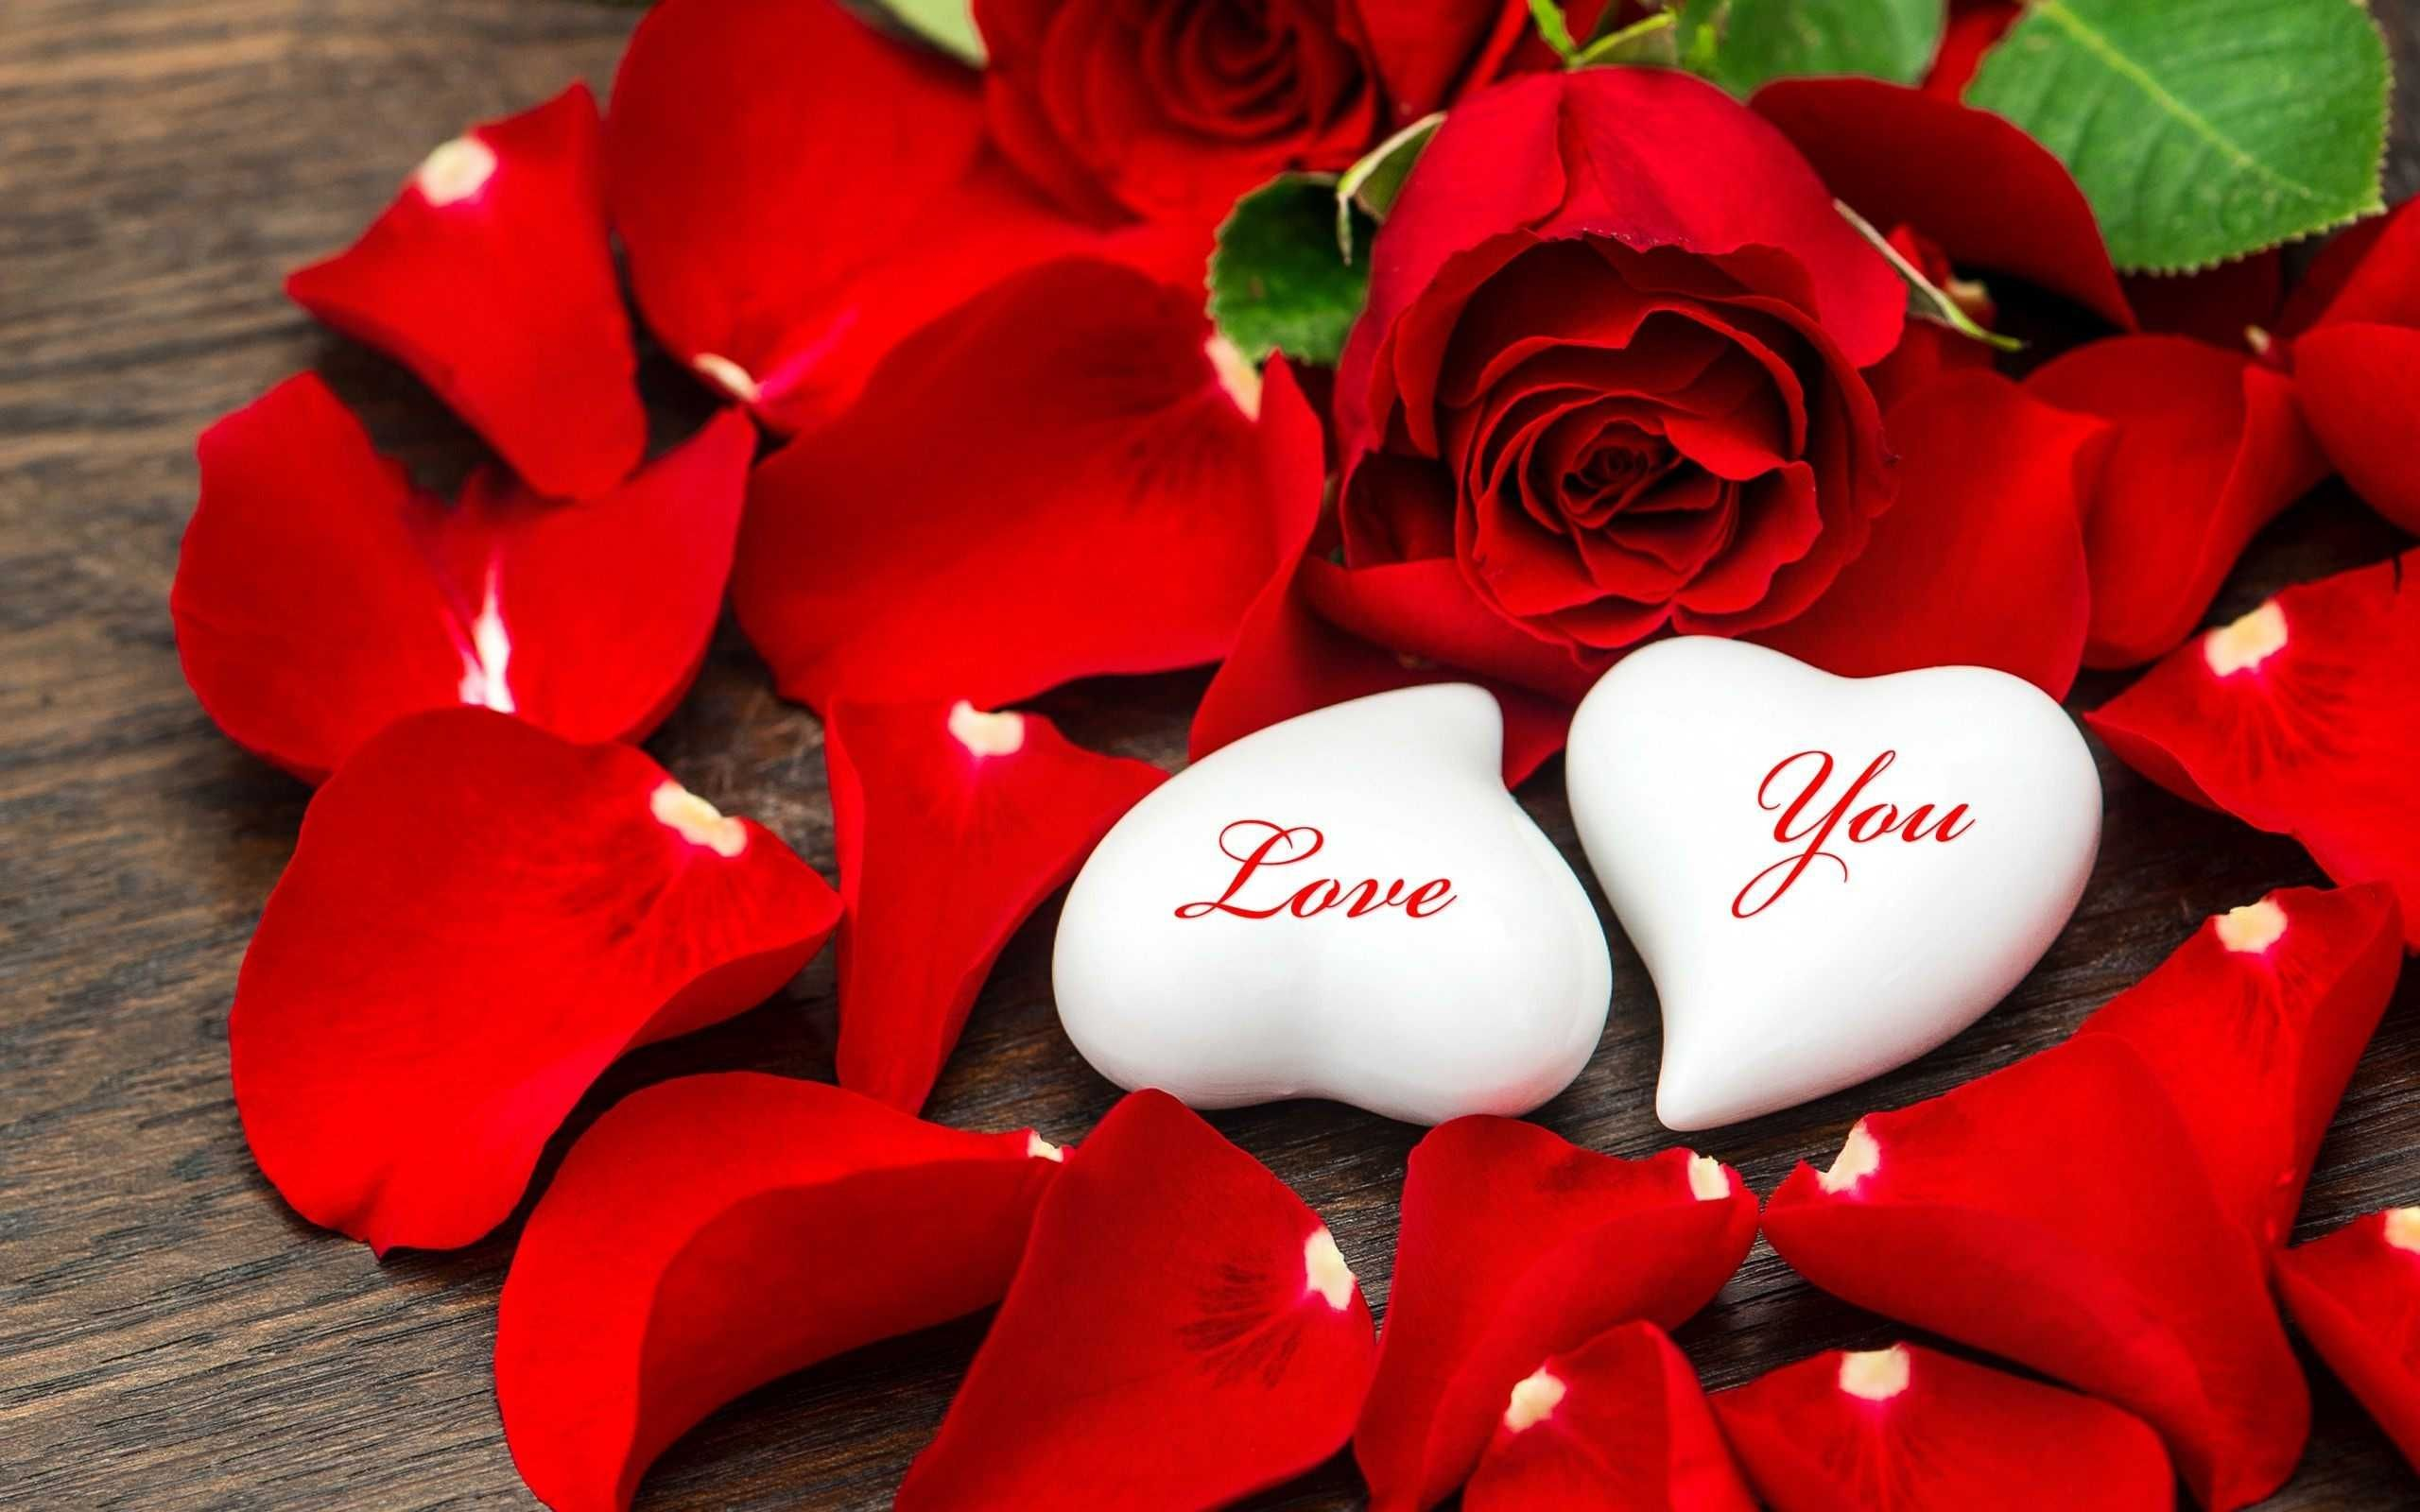 Romantic Love Flowers Wallpapers Top Free Romantic Love Flowers Backgrounds Wallpaperaccess